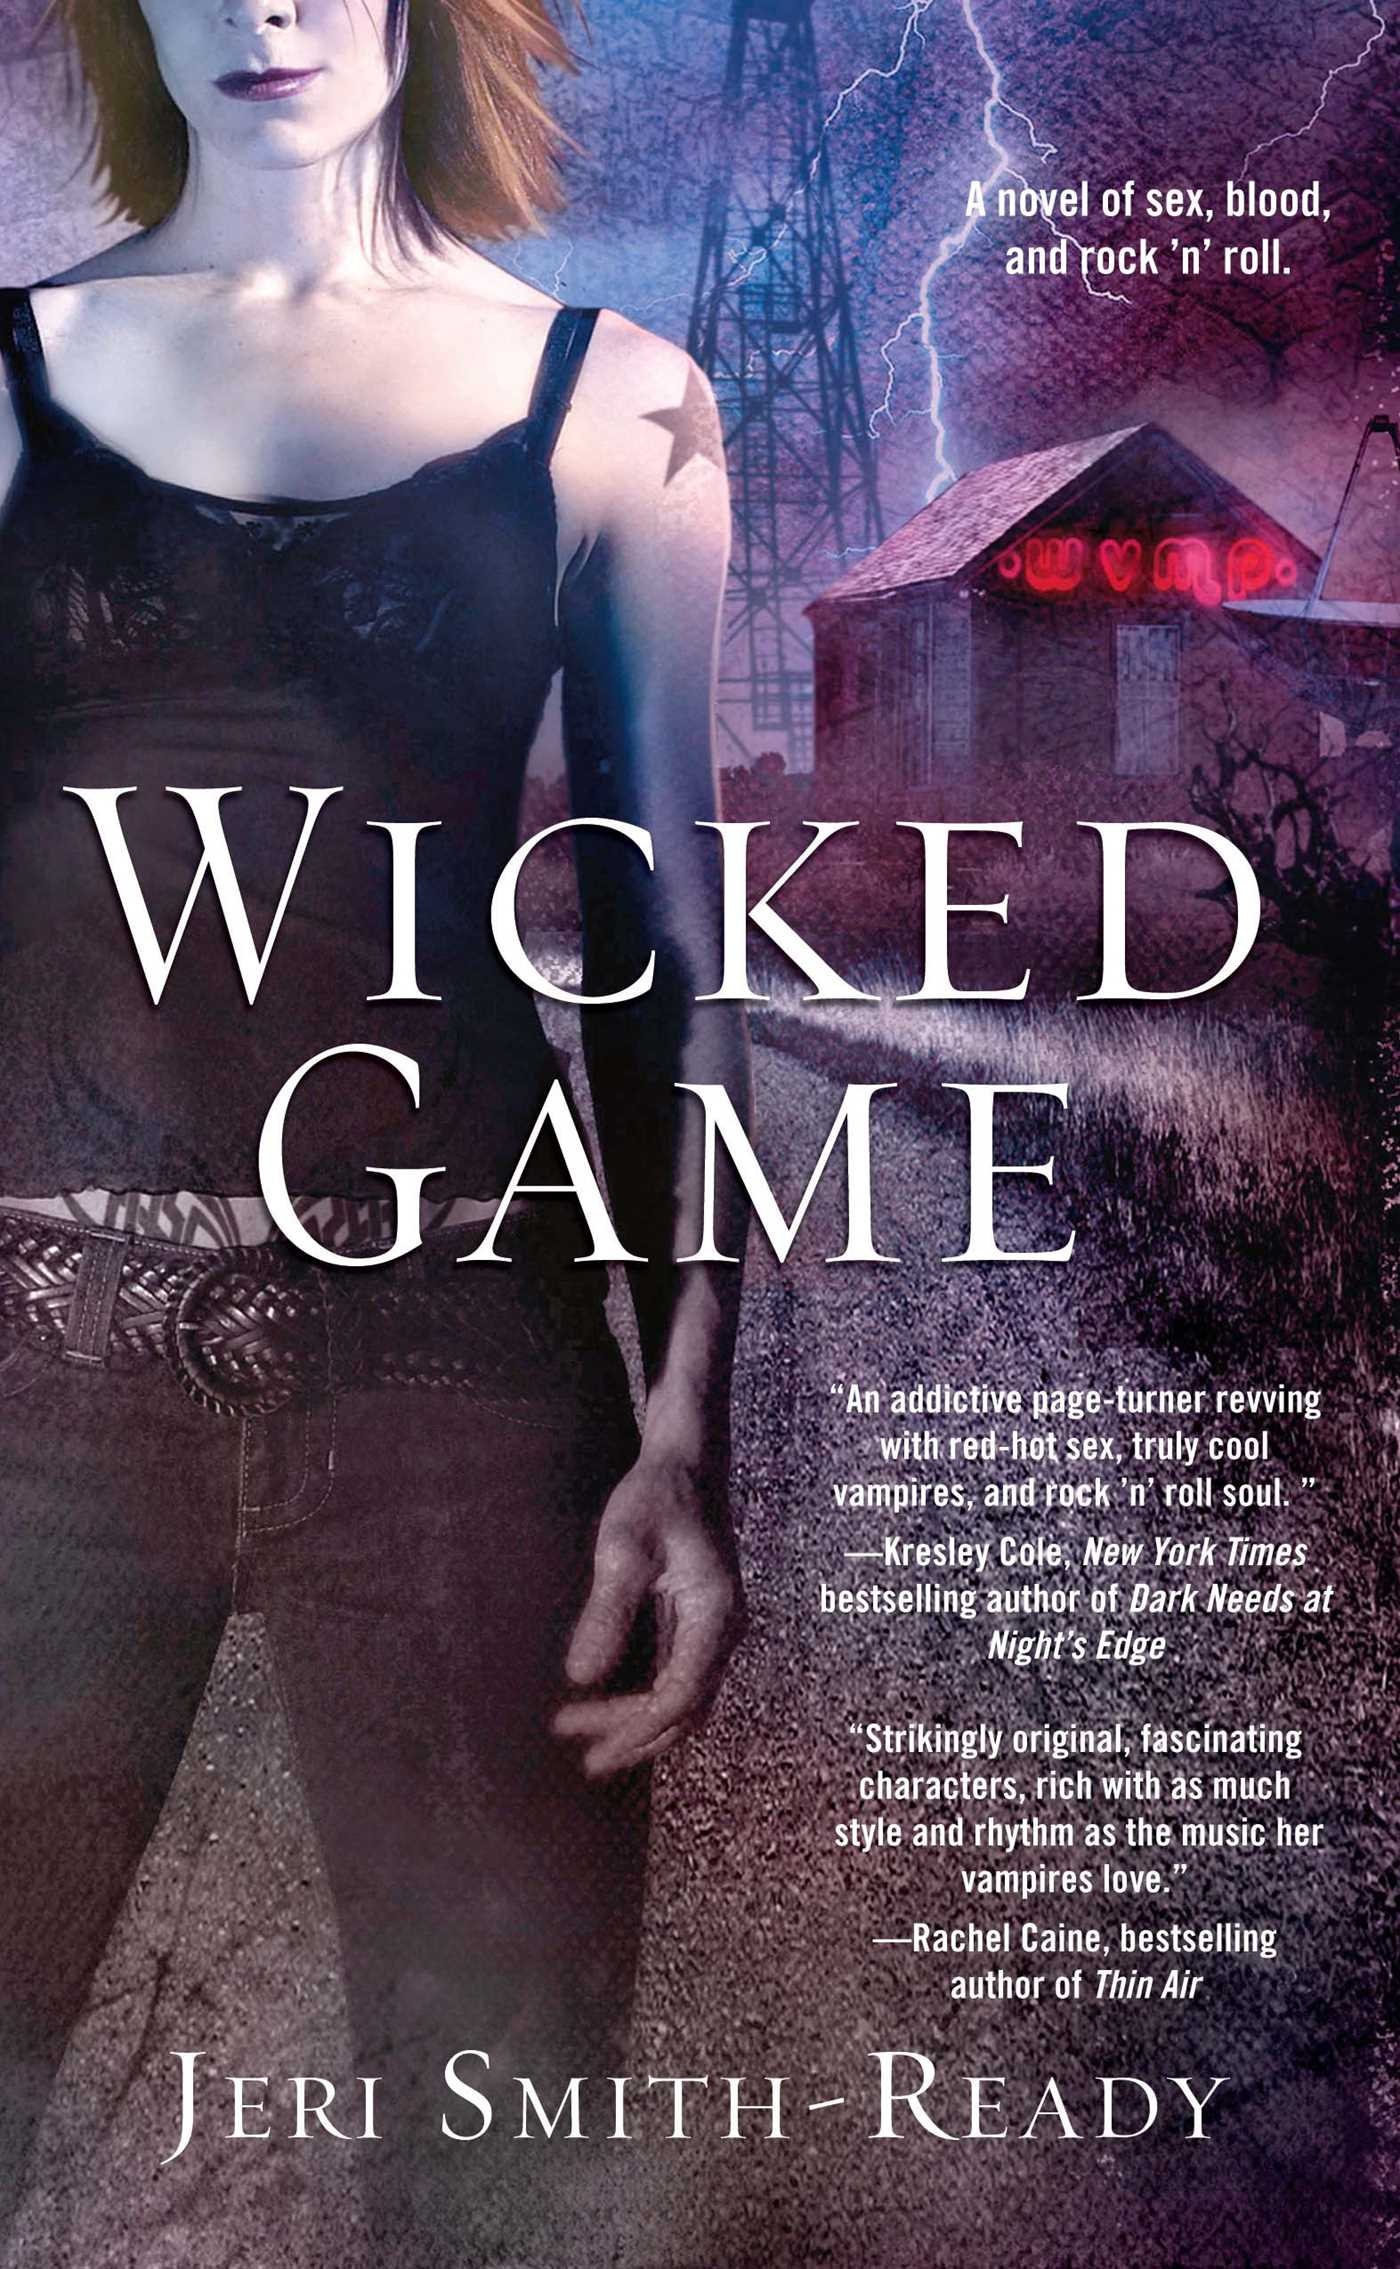 Wicked-game-9781416551768_hr